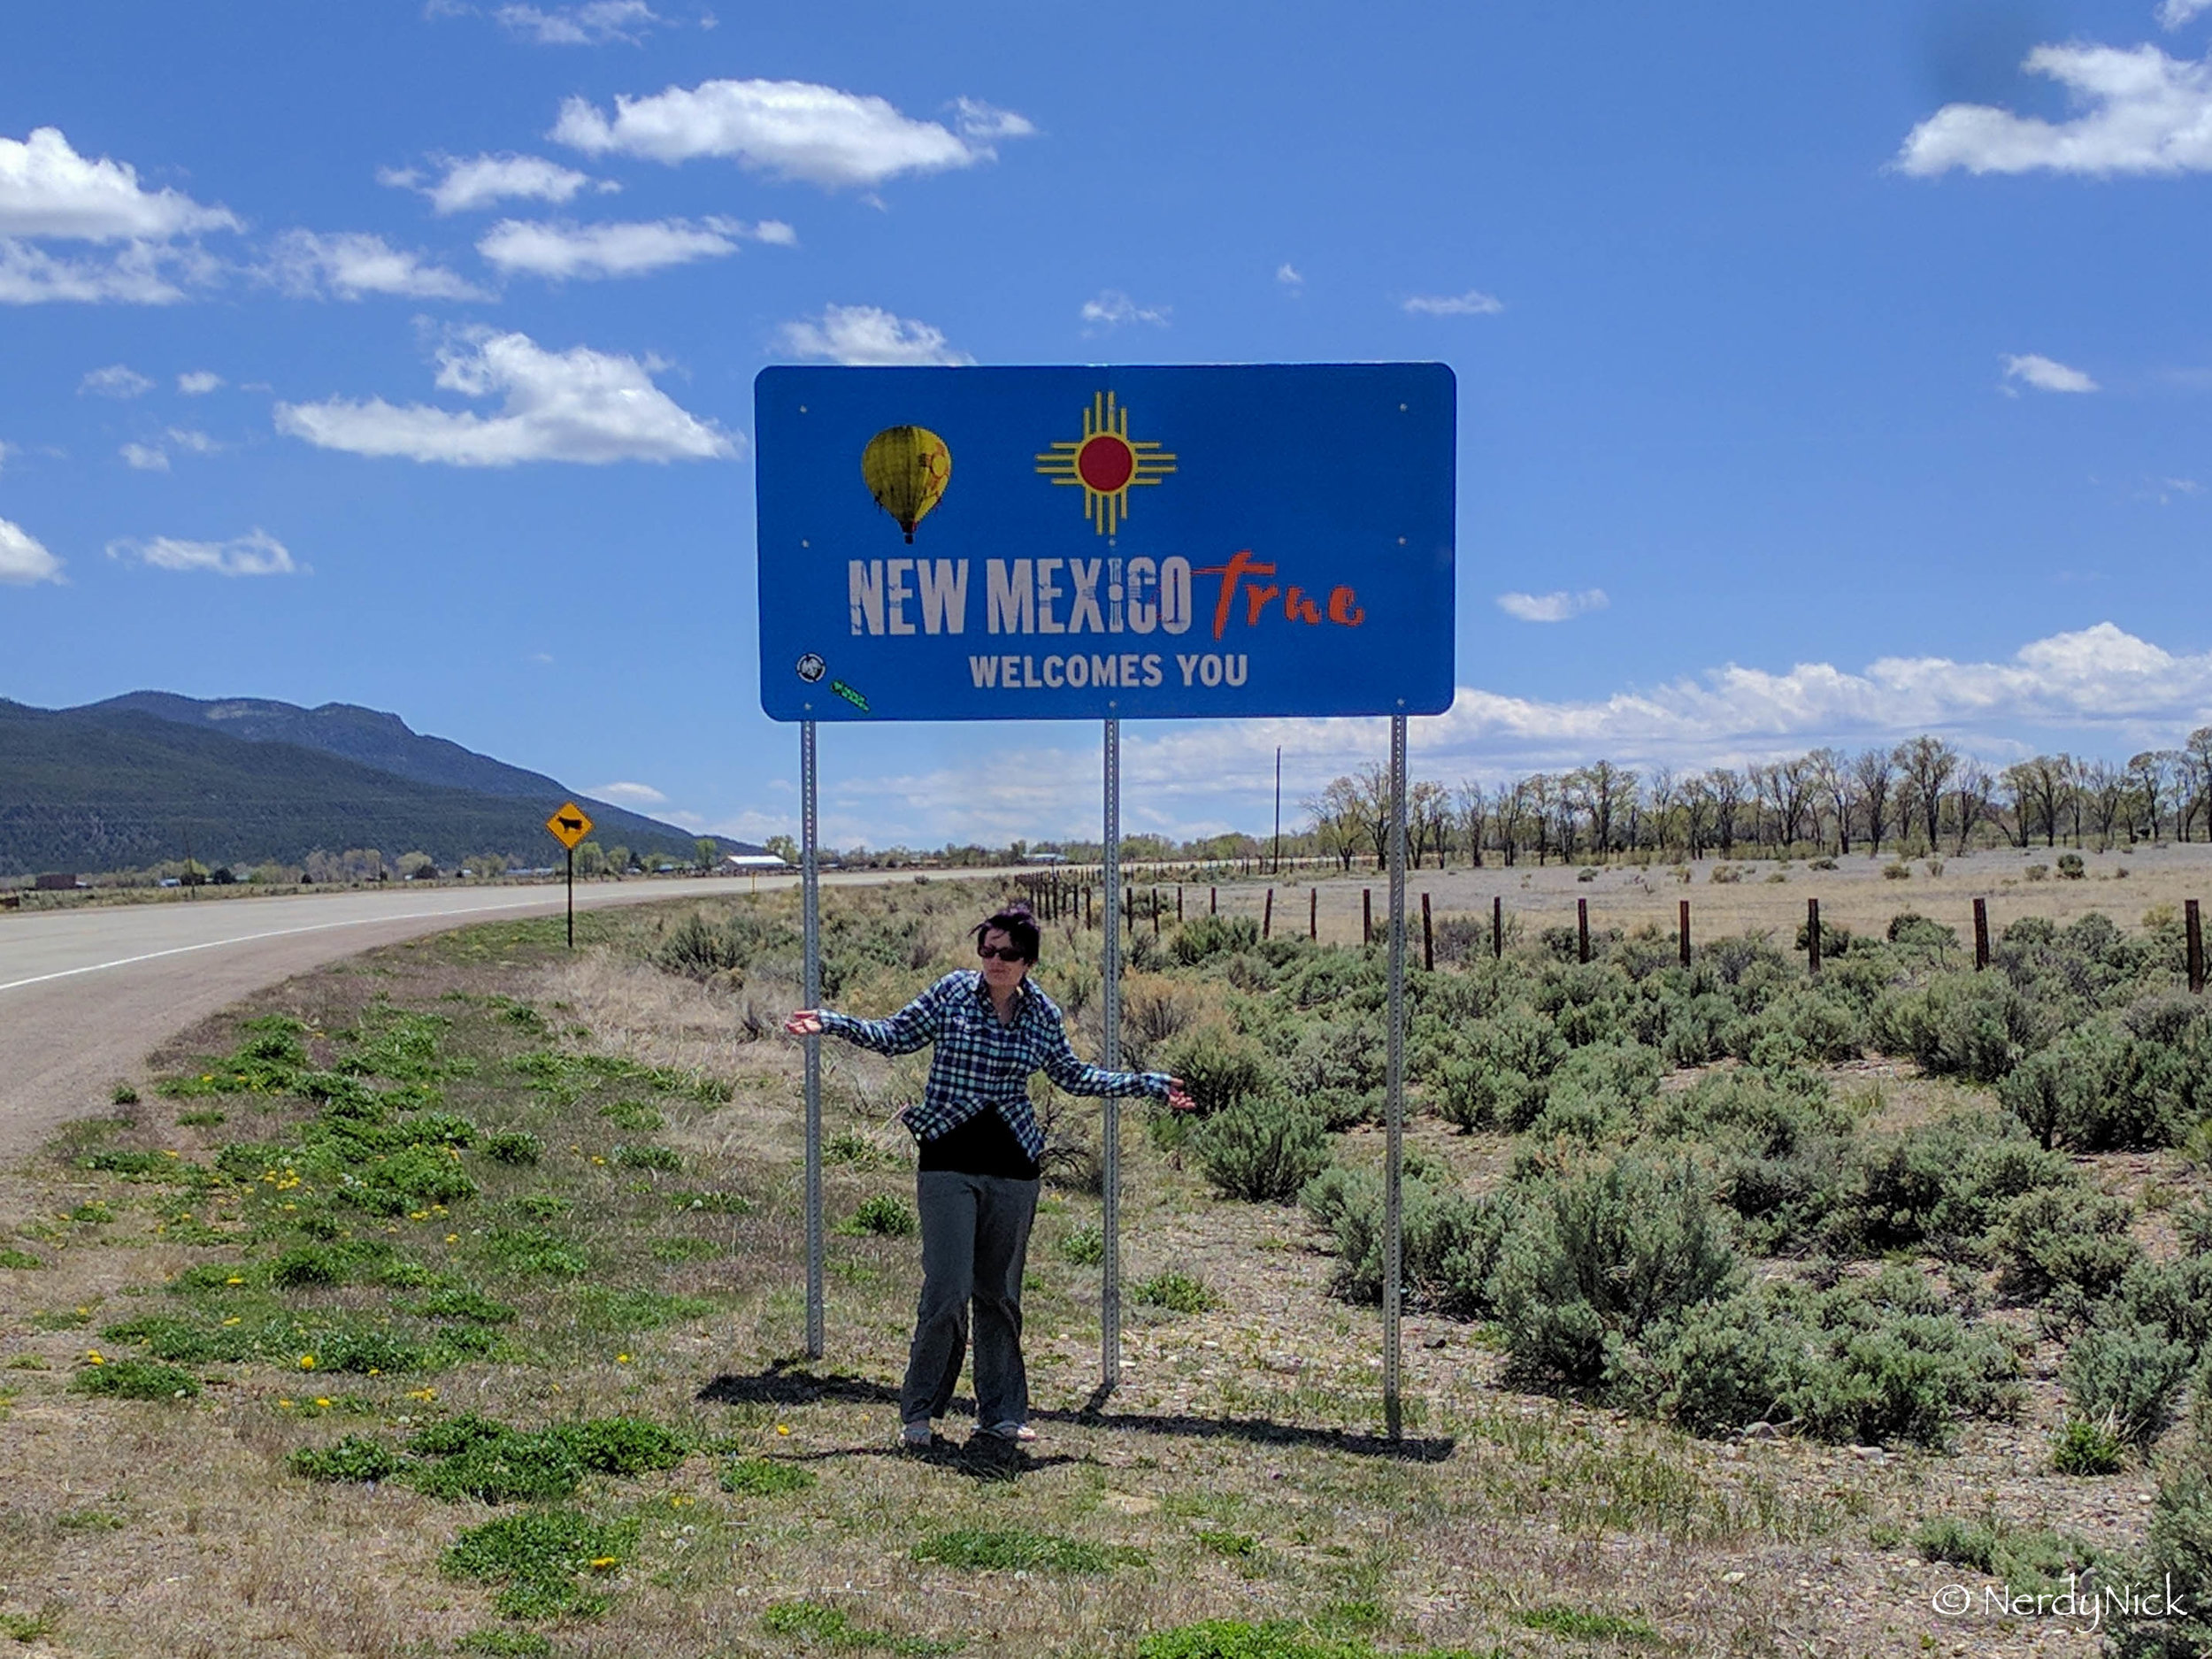 Welcome to New Mexico. They need to update their sign game.